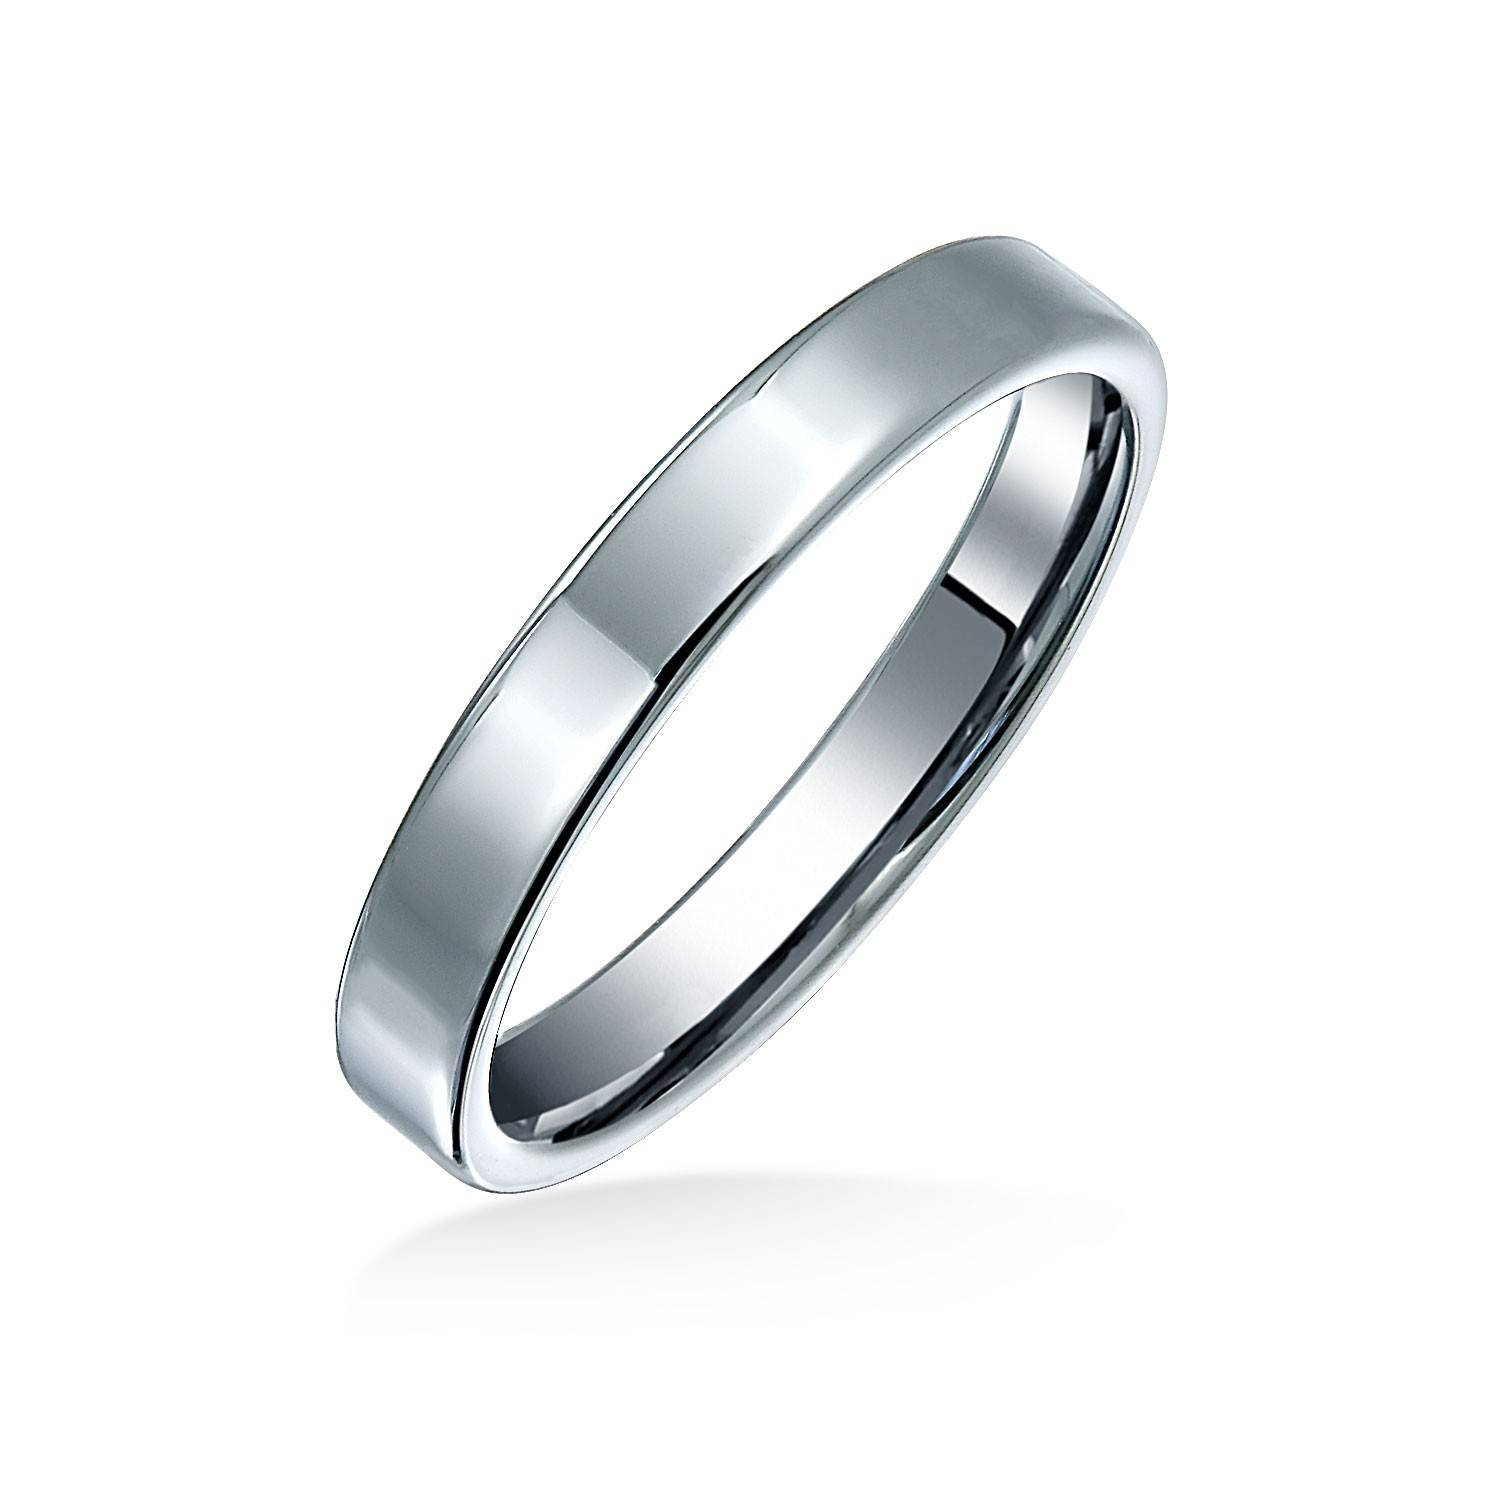 Unisex Polished Tungsten Flat Wedding Band Ring 3Mm Pertaining To 2017 Mens Flat Wedding Bands (View 15 of 15)